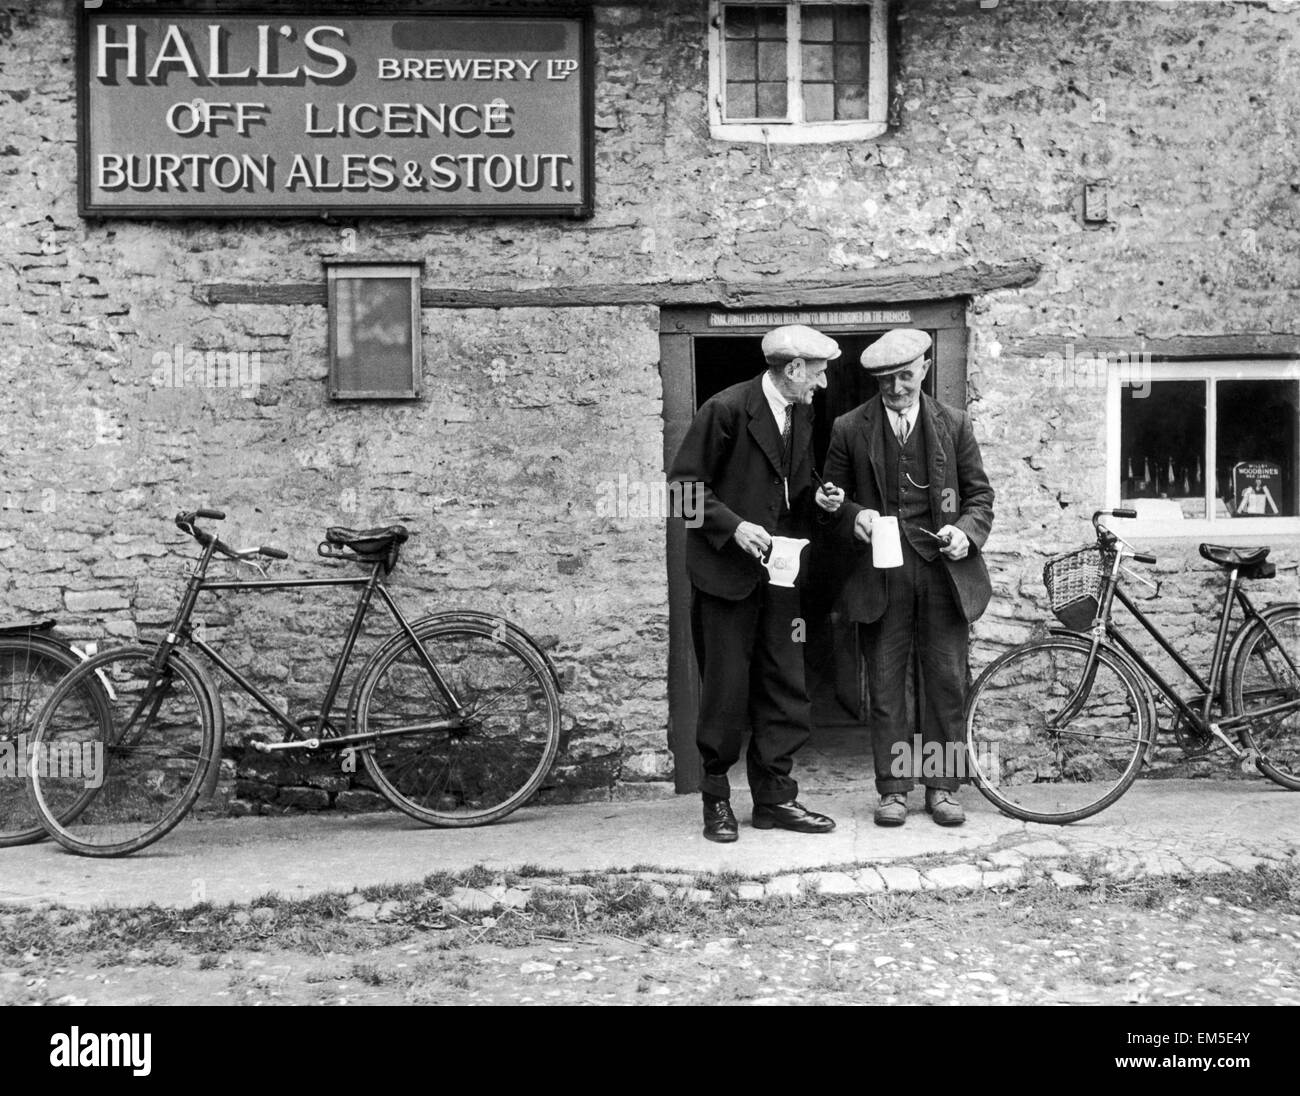 Halls Brewery Off Licence Burton Ales & Stout in Bucknell Oxford The village does not have a pub so locals have - Stock Image